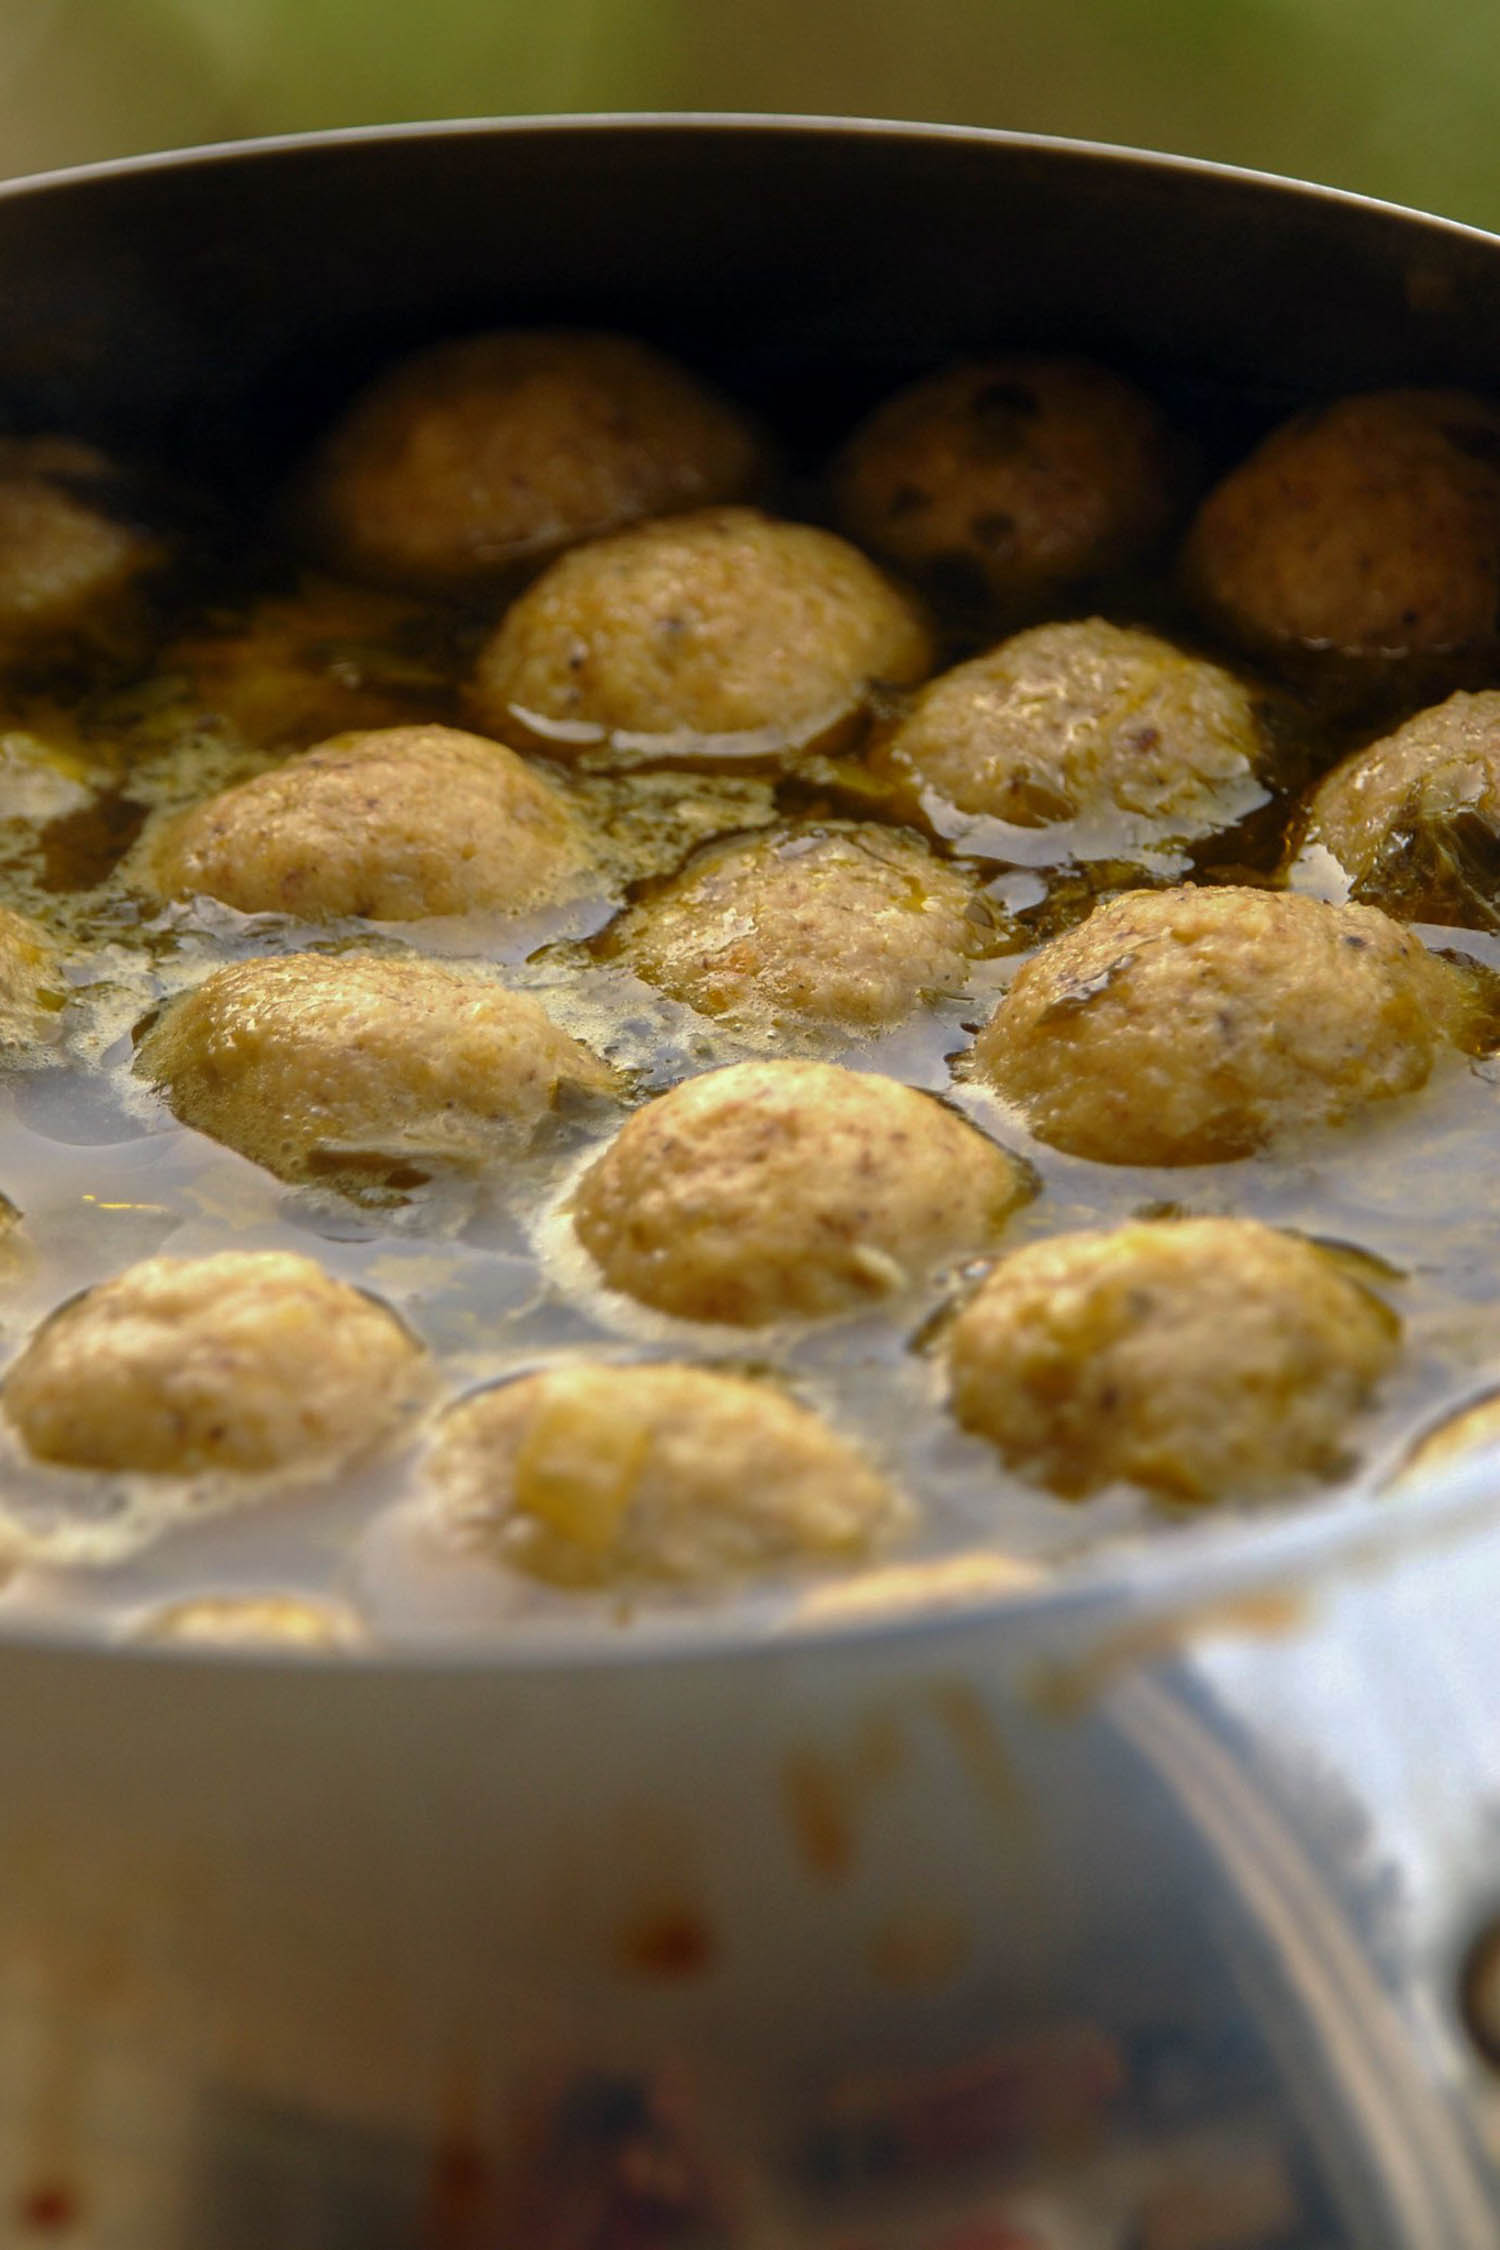 matzah ball soup in a pan simmering, common Rosh Hashanah food